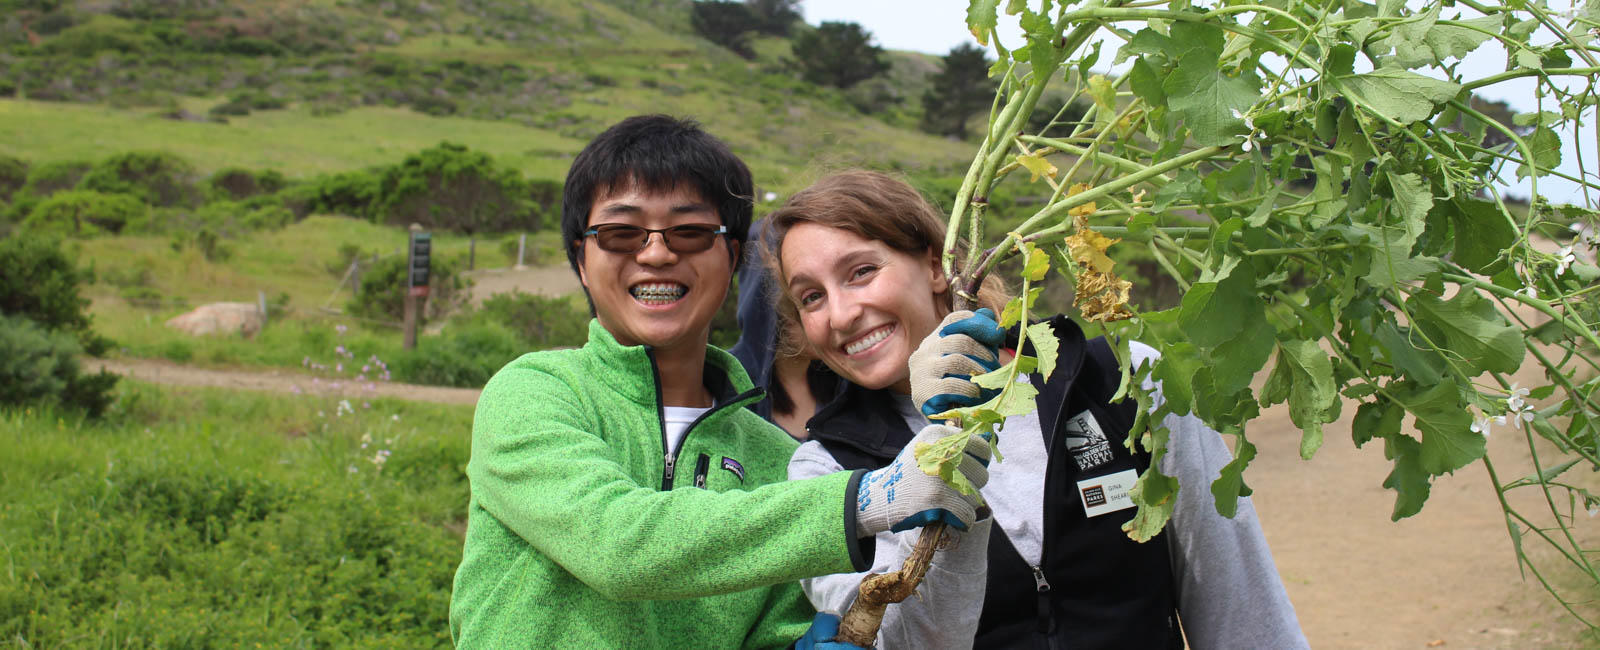 Park Stewardship Intern and Volunteer